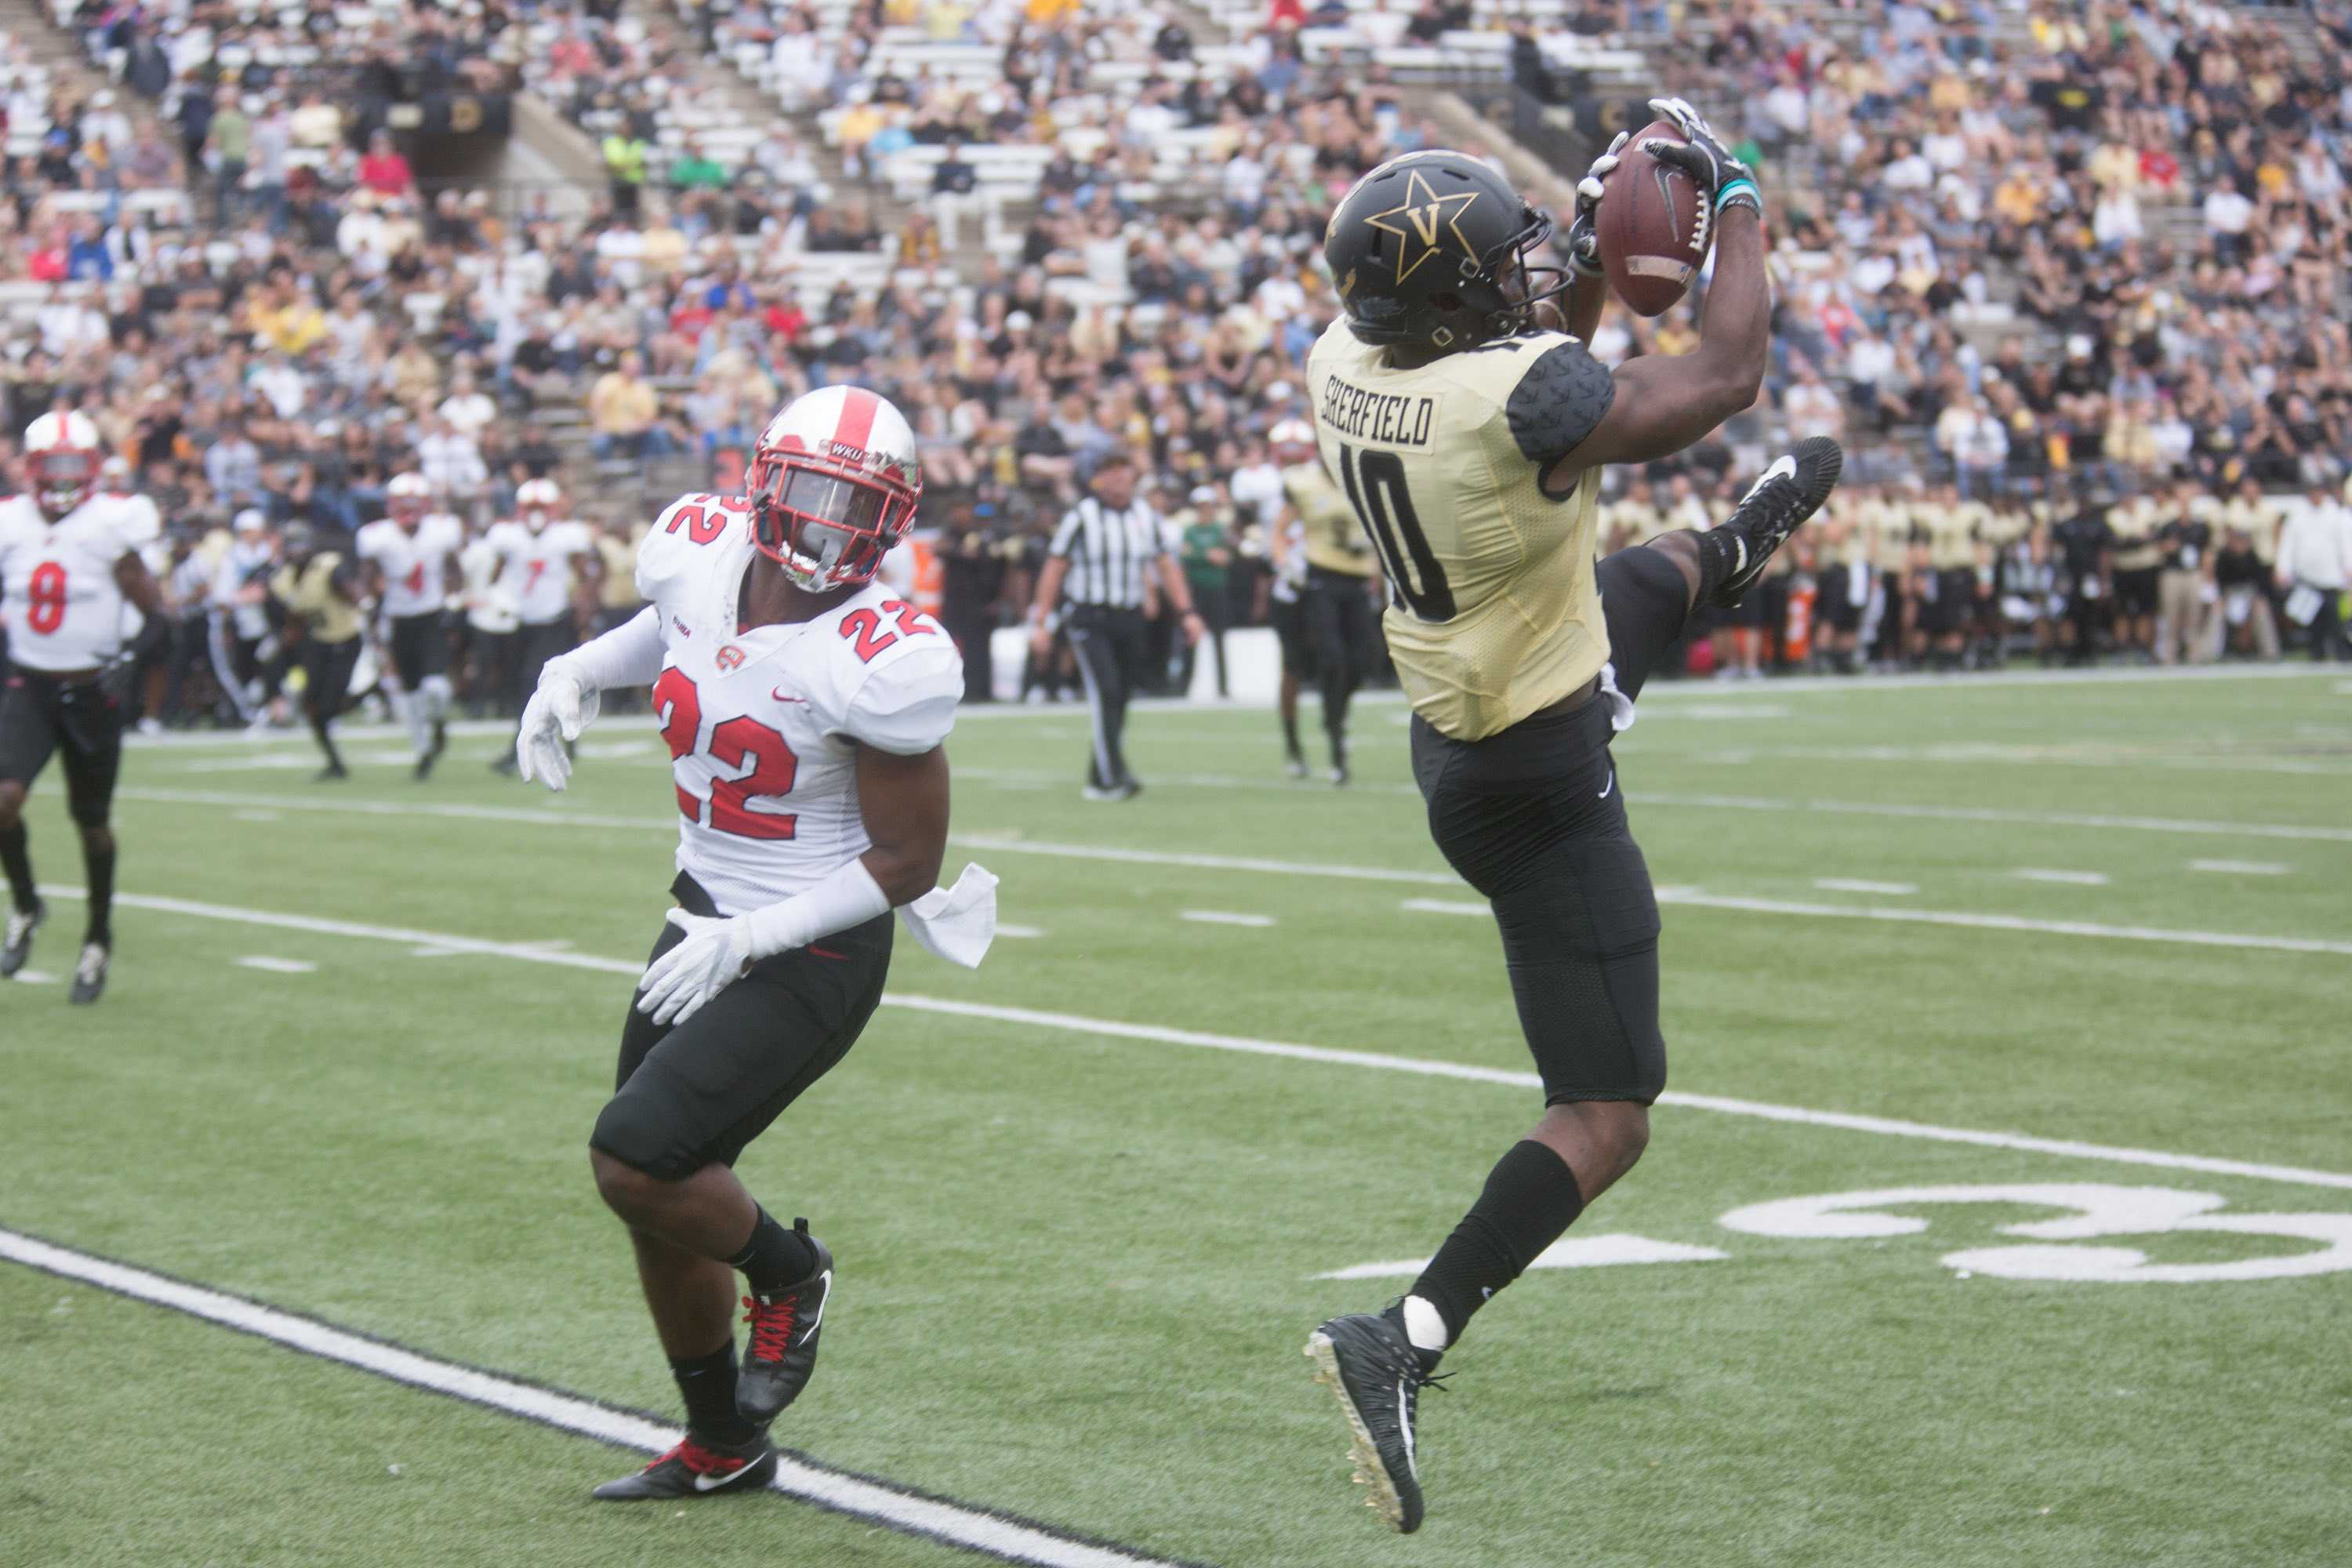 The Commodores play the WKU Hilltoppers on Saturday, November 4, 2017.